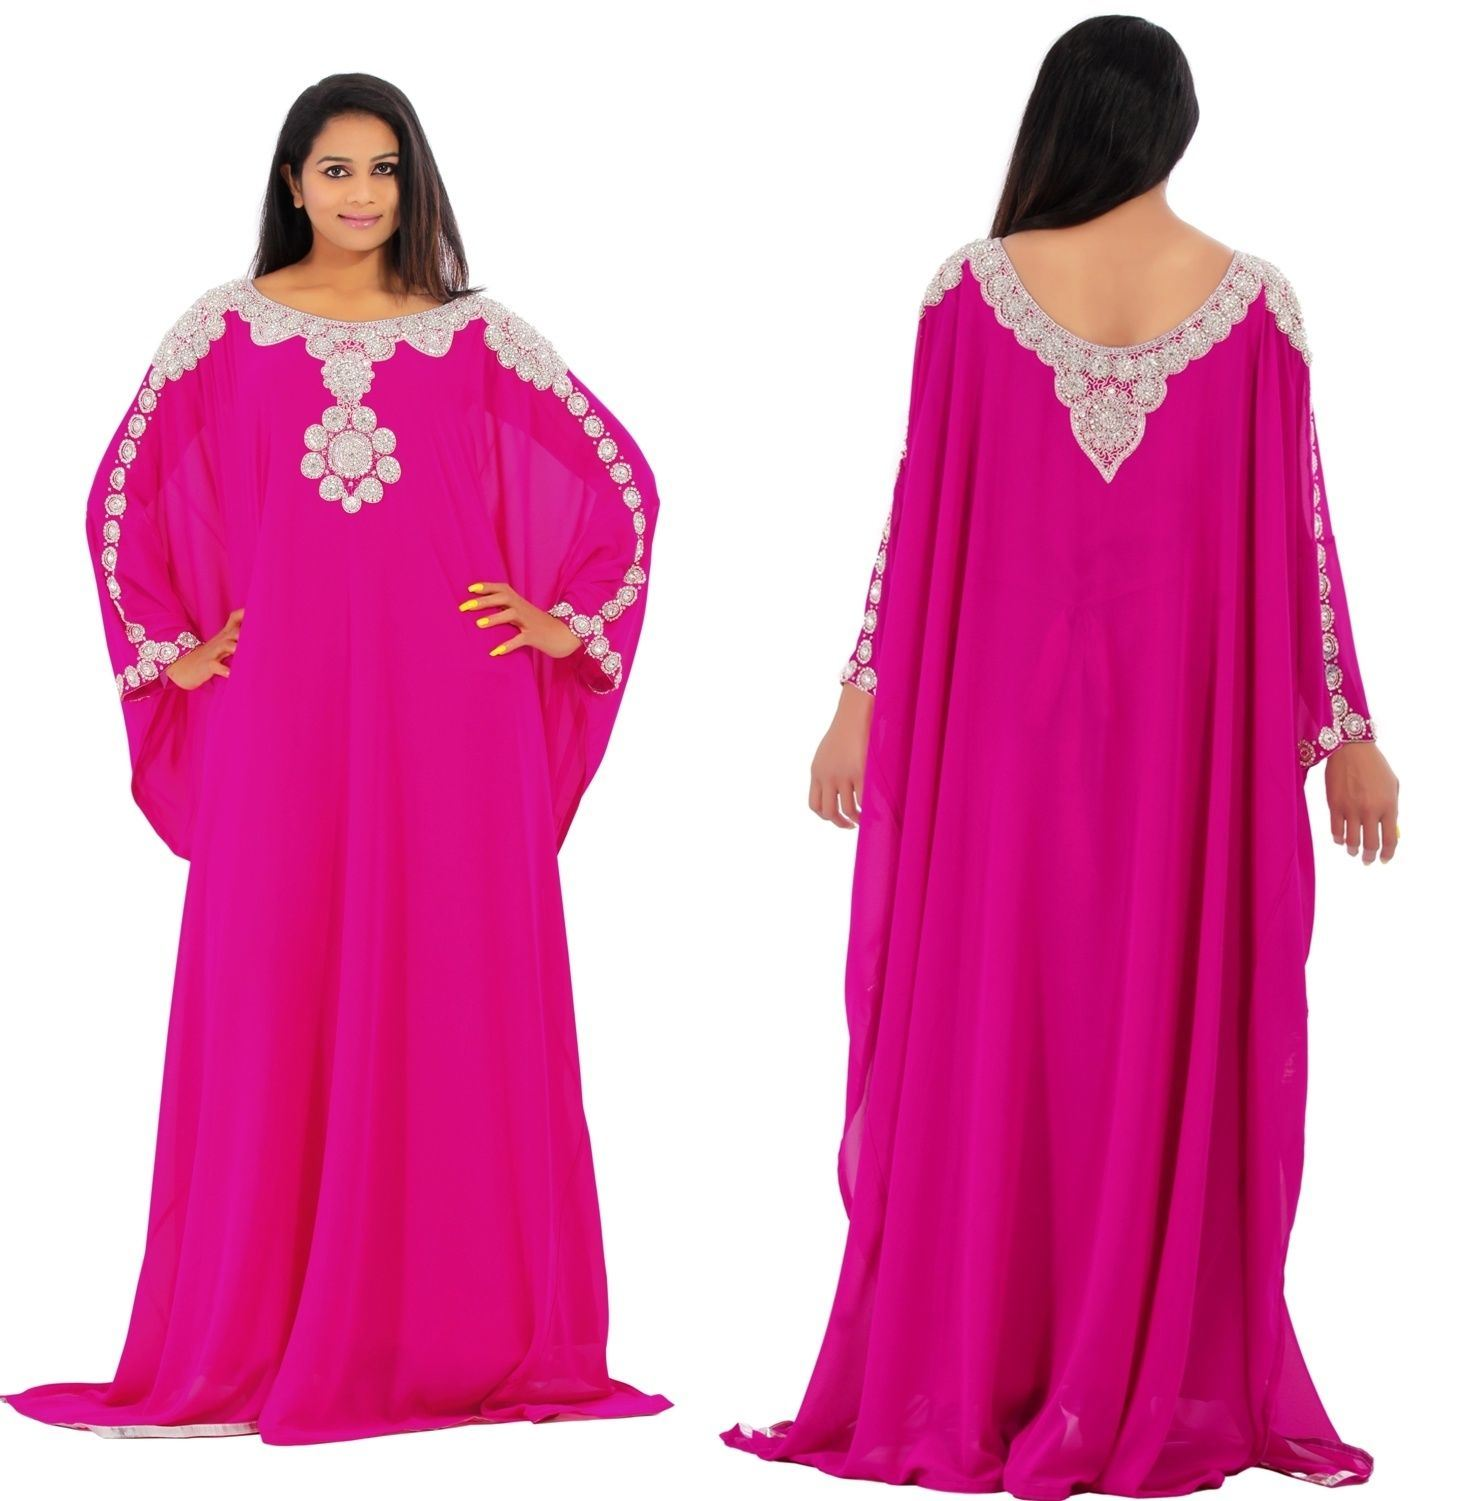 www imag kaftan 2016 caftan marocain 2016 caftan pas cher location caftan robe printemps 233. Black Bedroom Furniture Sets. Home Design Ideas